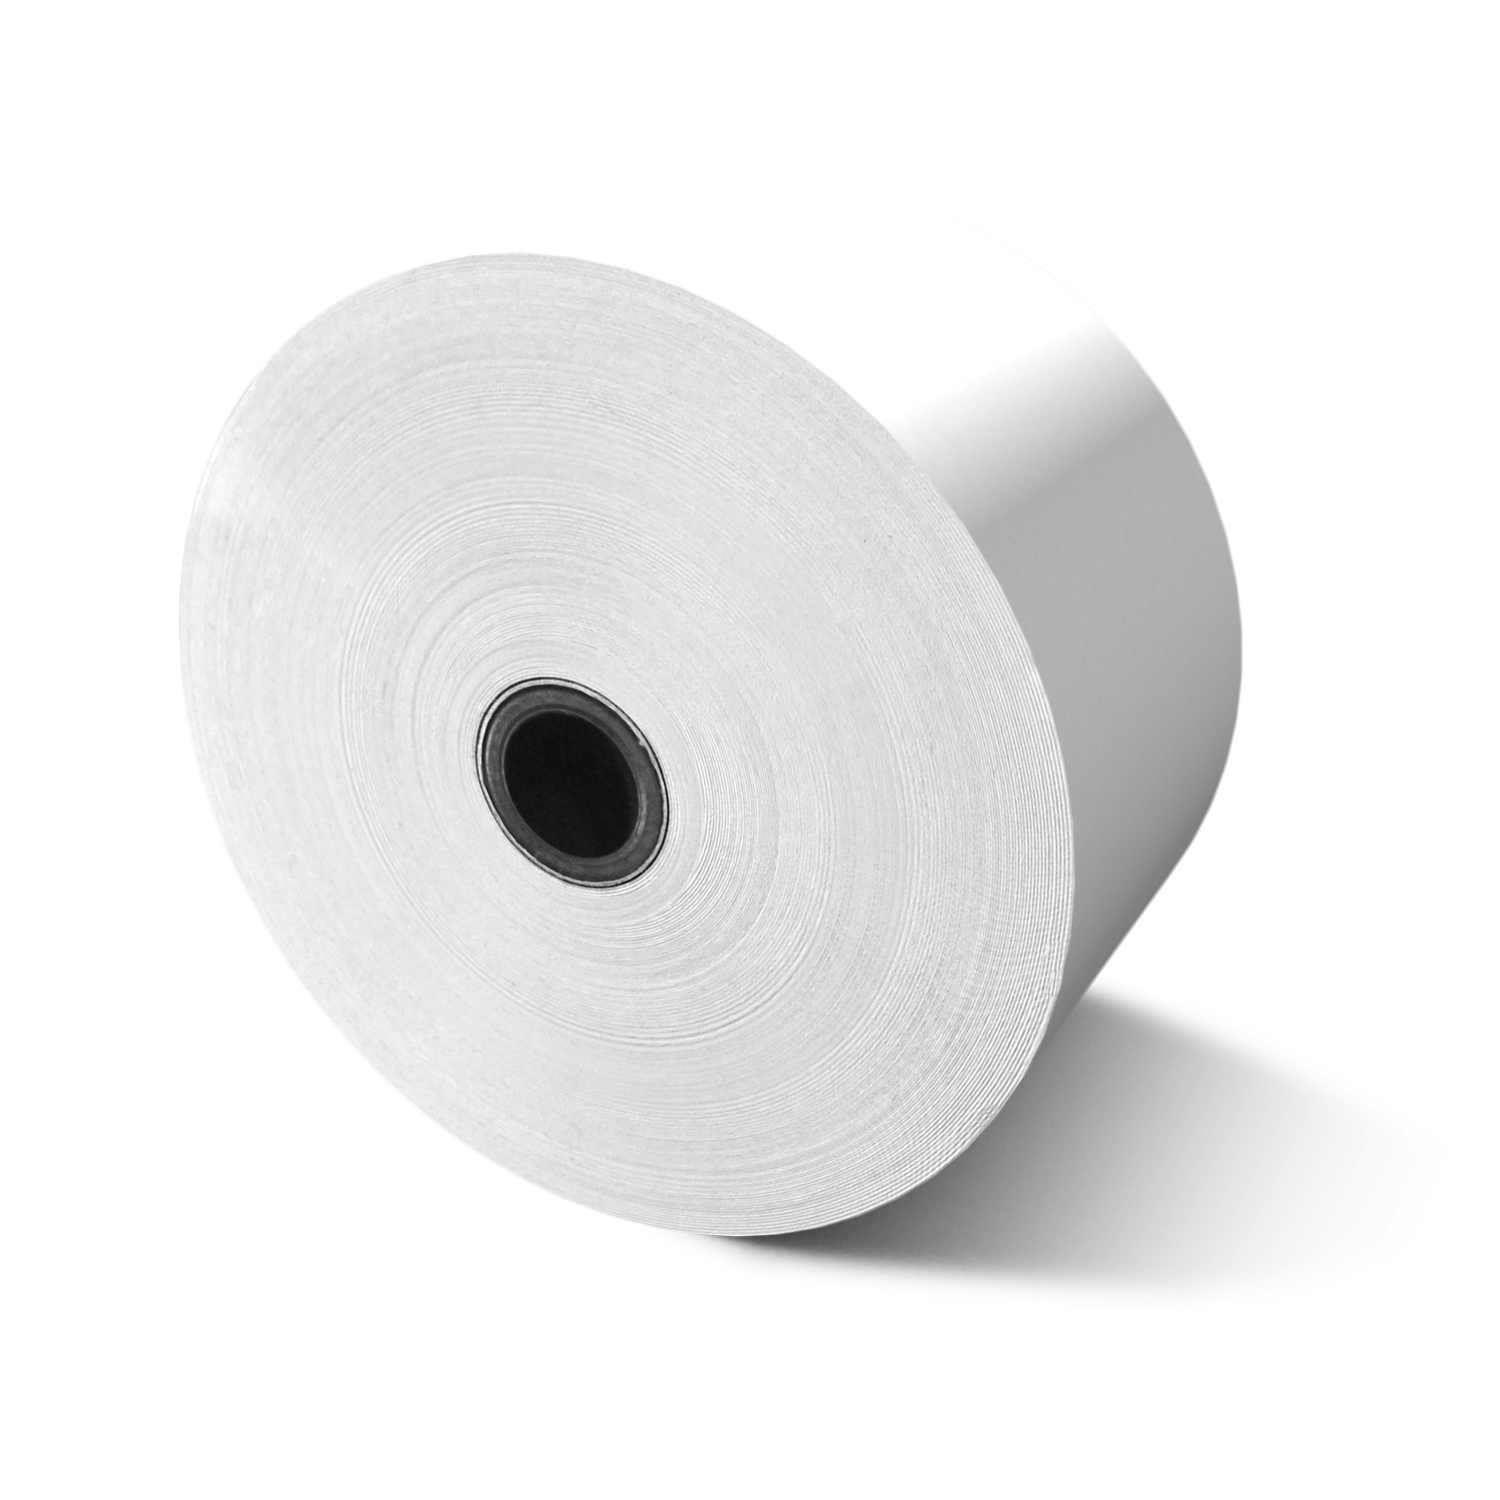 alliance-imaging-products-atm-paper-rolls